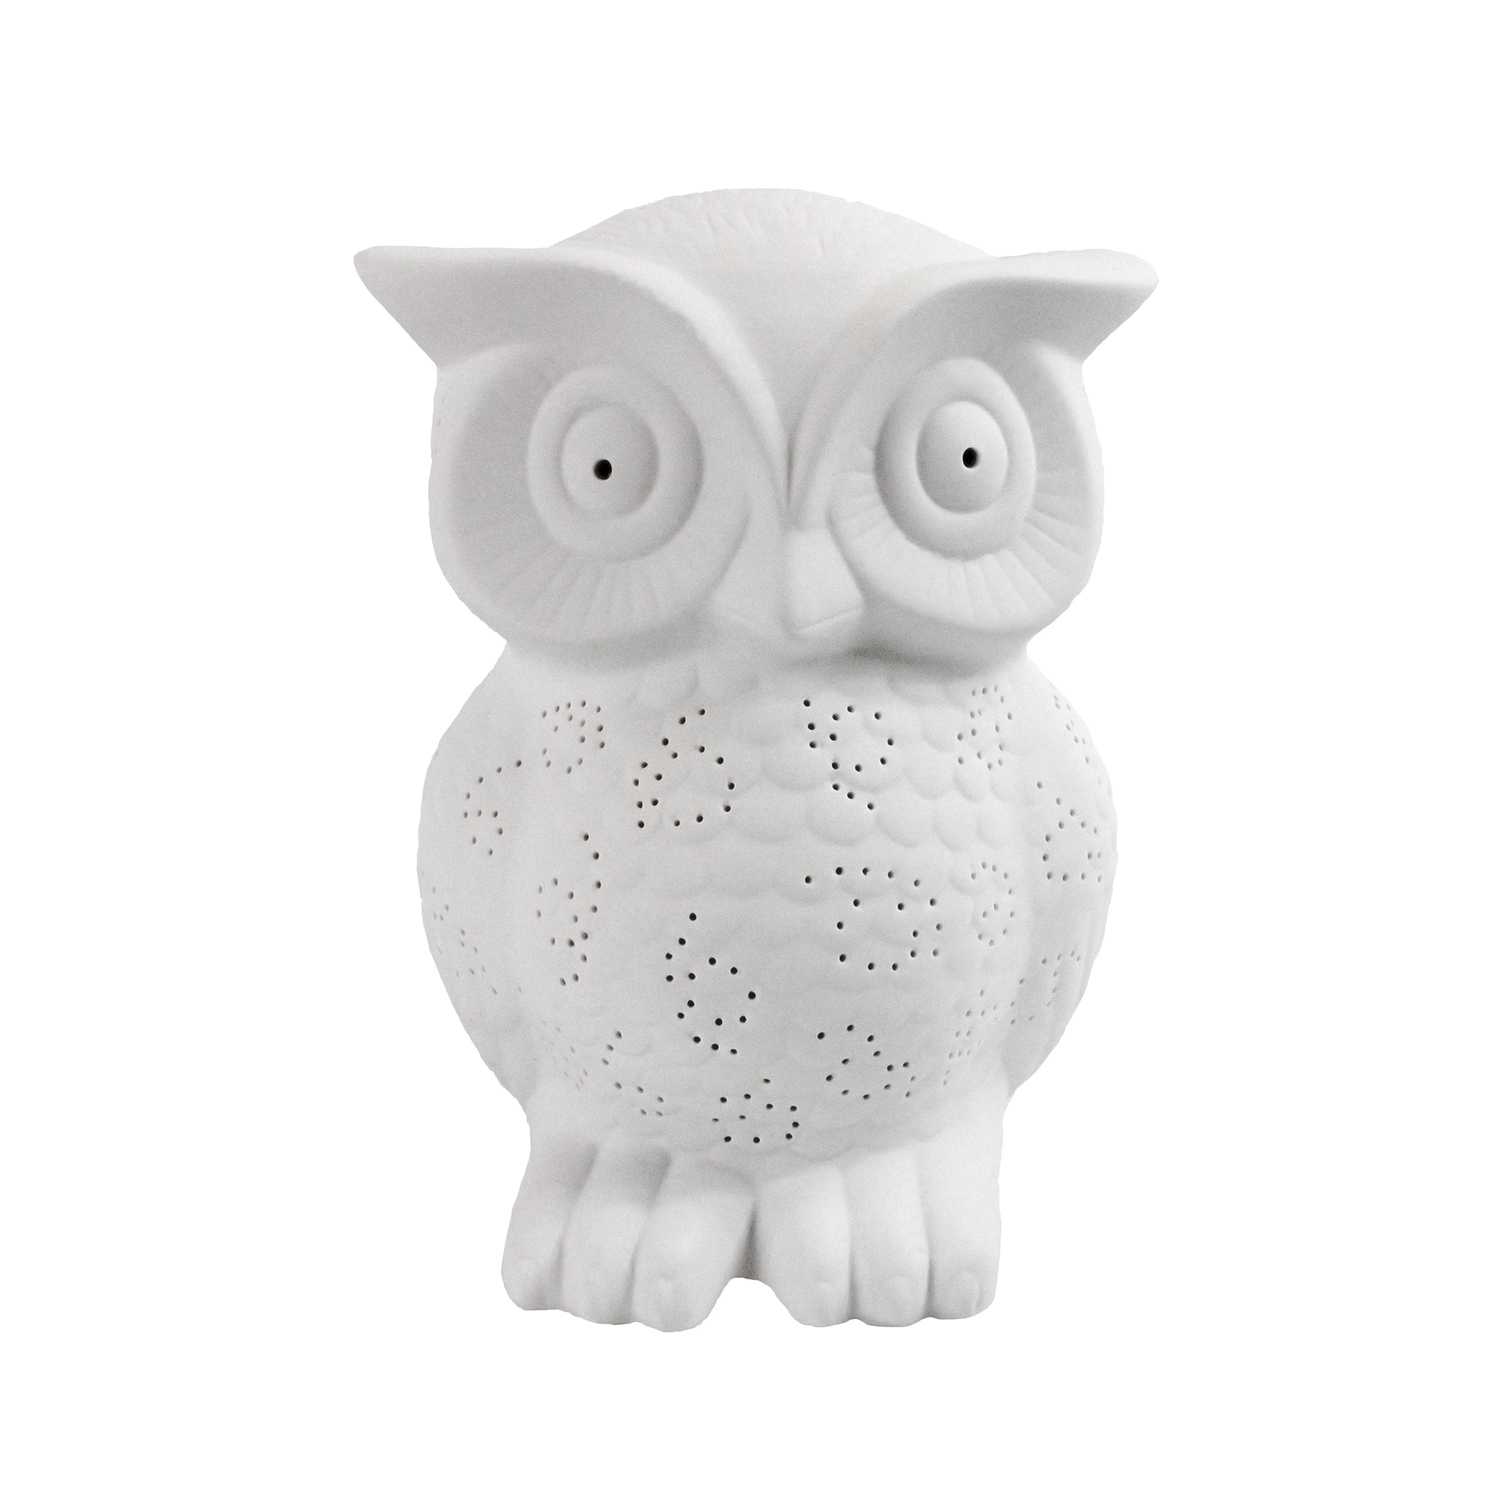 Simple Designs Porcelain Wise Owl Shaped Animal Light